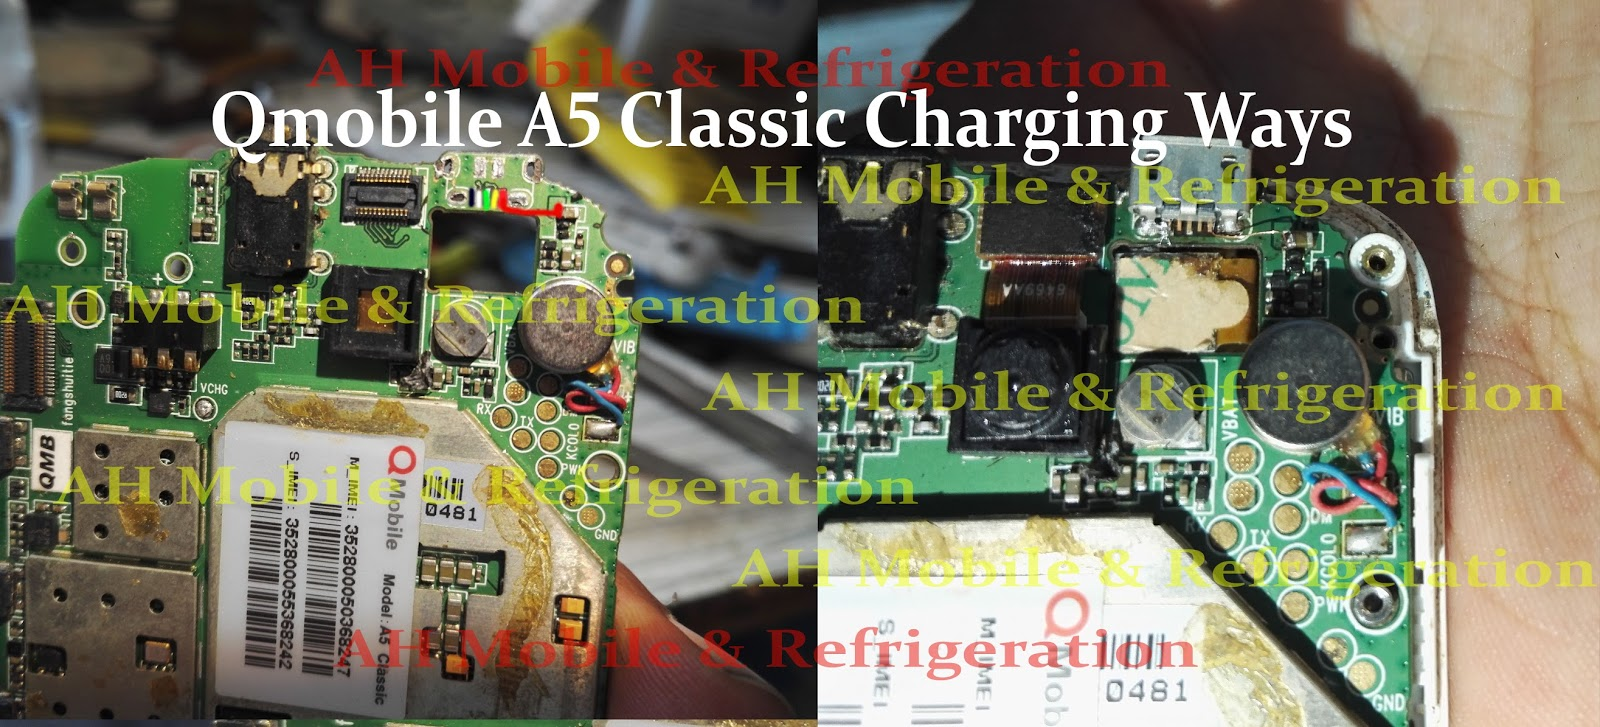 QMobile A5 Classic Charging Solution Jumper Problem Ways